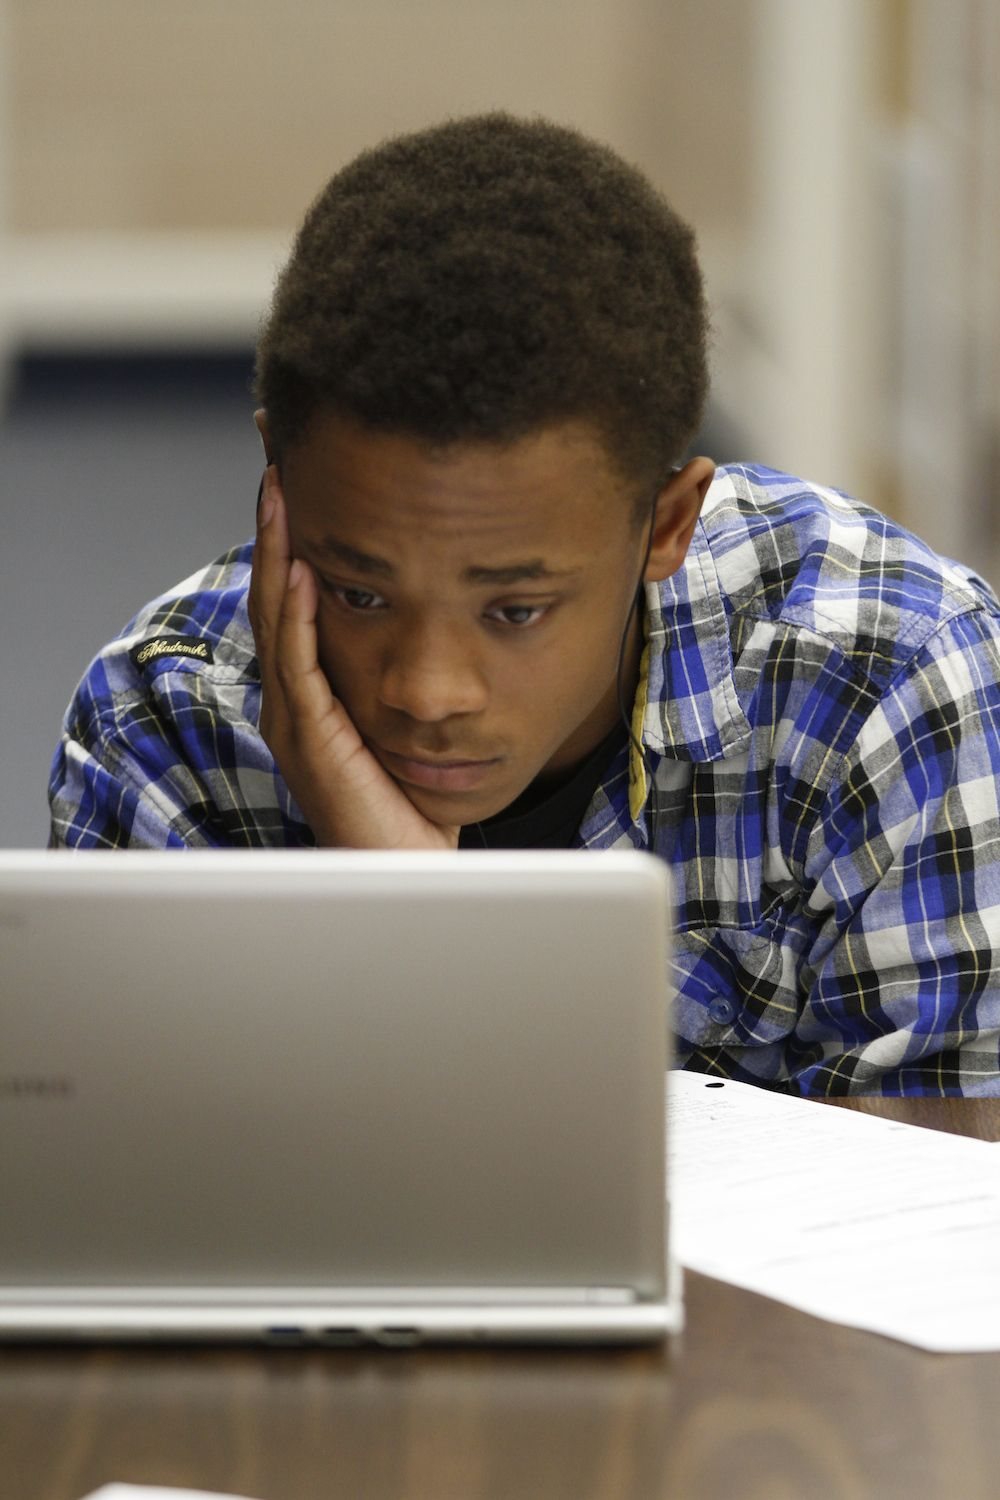 A Manual student works on his class assignment. Student scores on state exams dropped so low Denver Public Schools ranked Manual among its lowest performing schools.